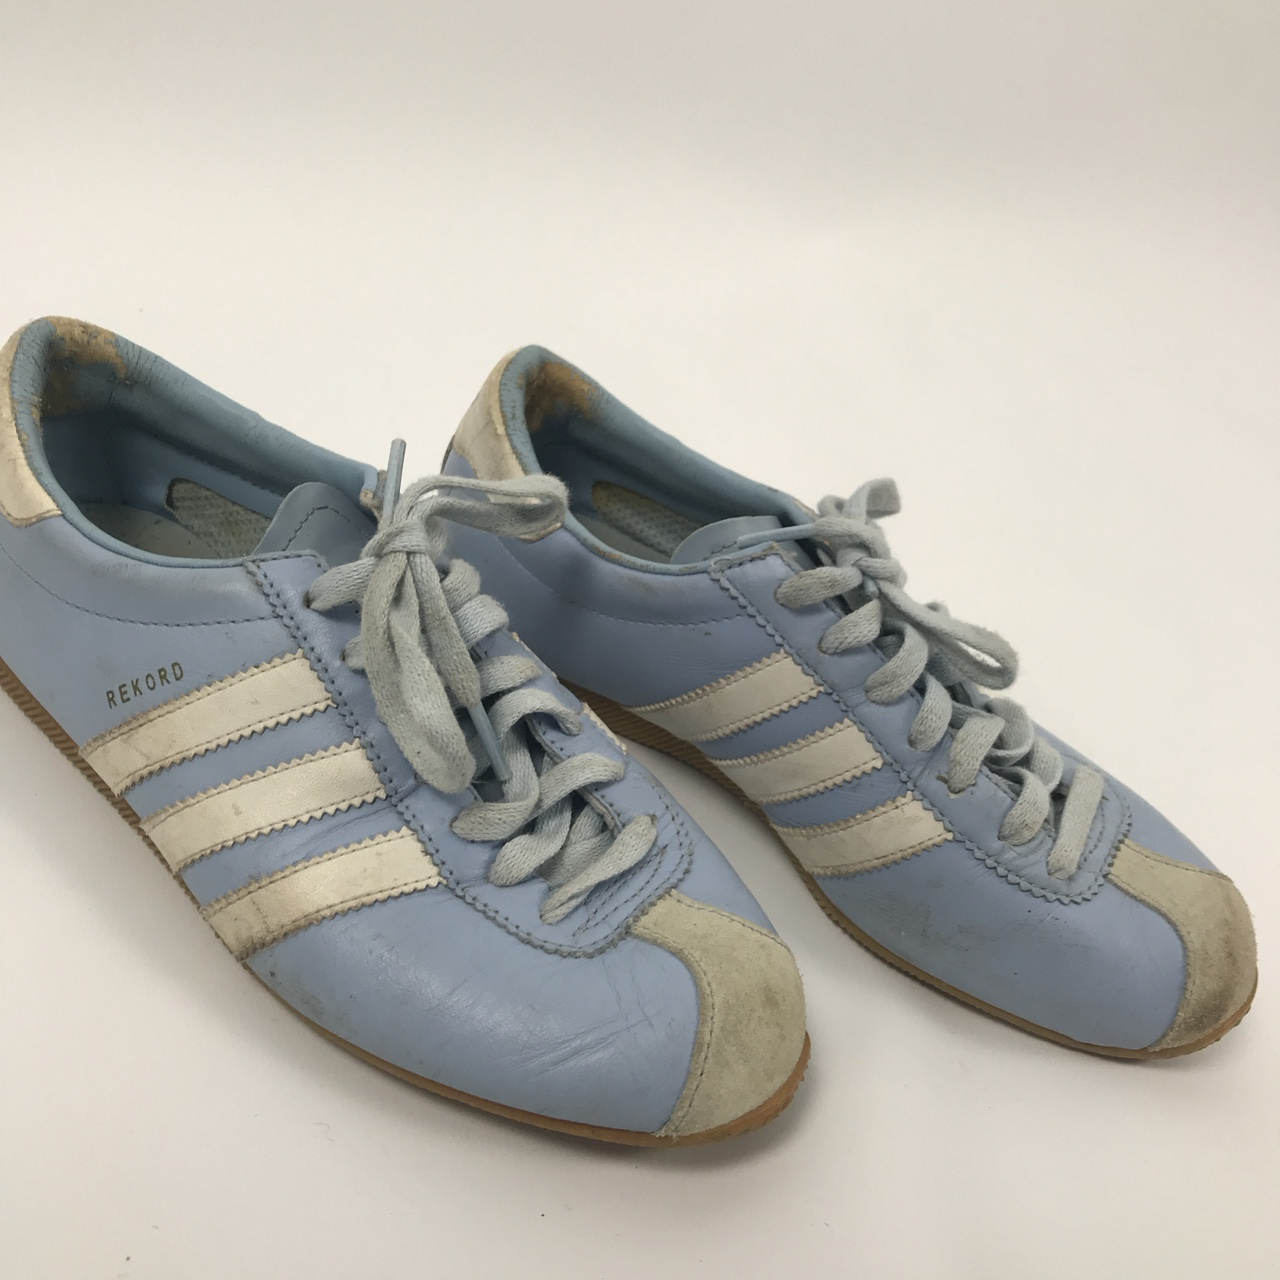 prix le plus bas cb91c dc52c Adidas Rekord Trainers Size 5 In baby blue Leather... - Depop